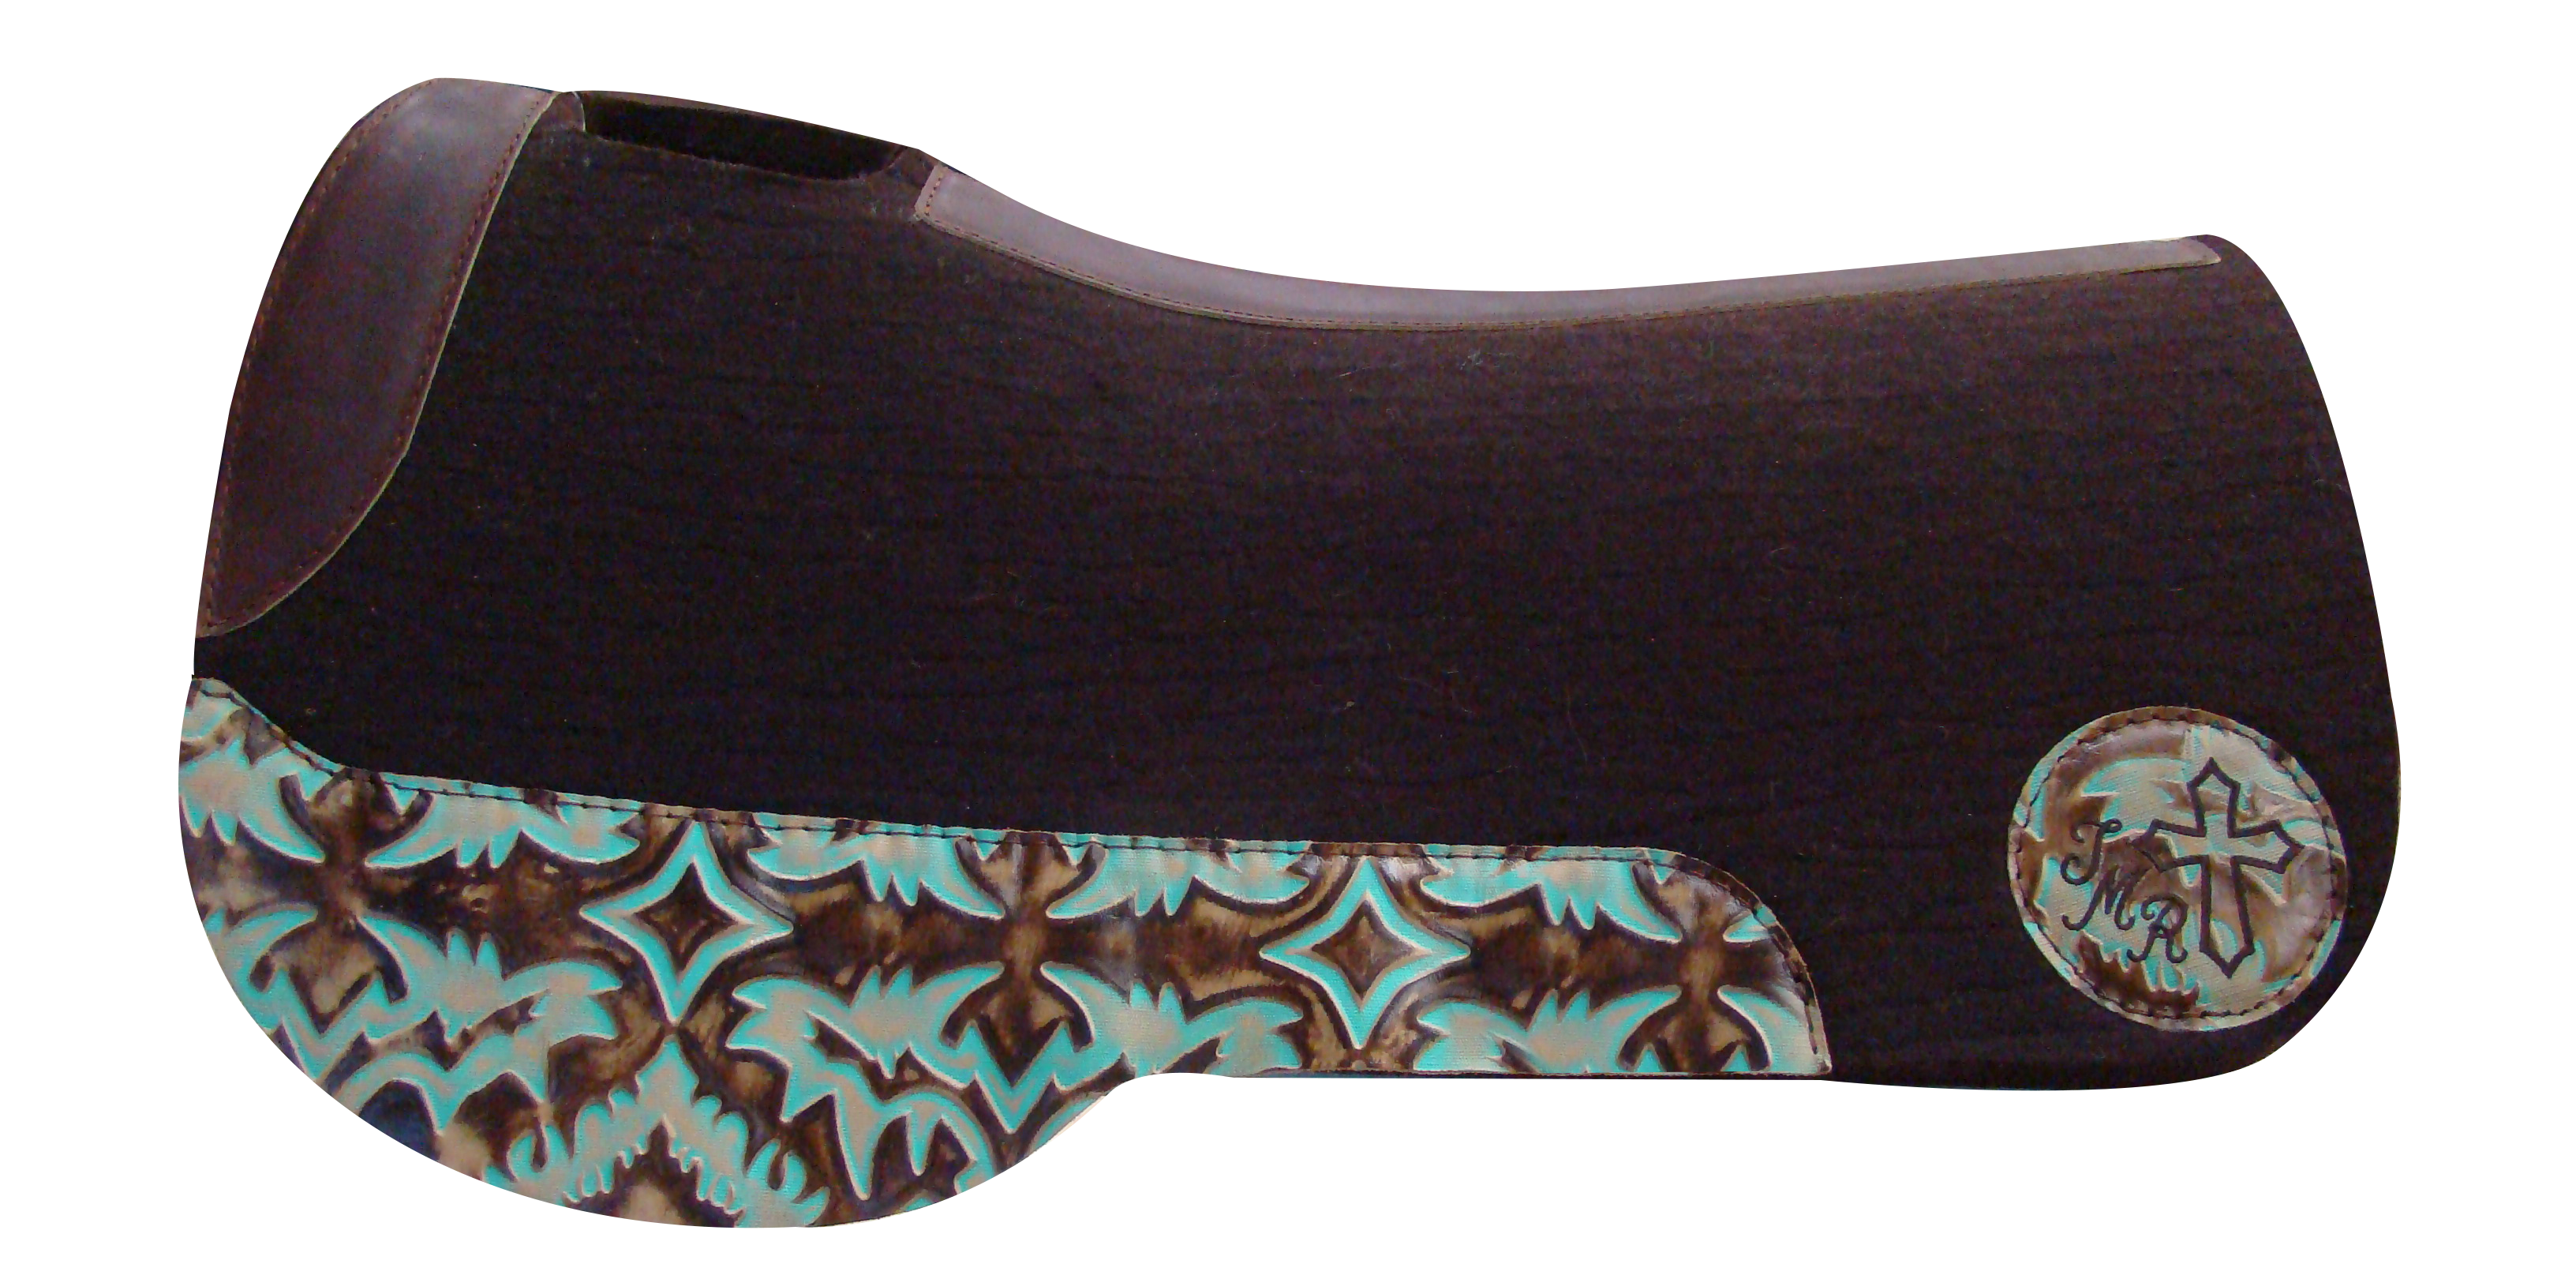 5 Star Equine Saddle Pads The Trail Rider: Trail Saddle Pads Dark Chocolate Pad with Breast Collar Protection Wear Leathers, Turquoise Laredo Wear Leathers and a custom embroidered circle patch! Customize your pad here: http://www.5starequineproducts.com/proddetail.php?prod=endurance-trail-saddle-pad